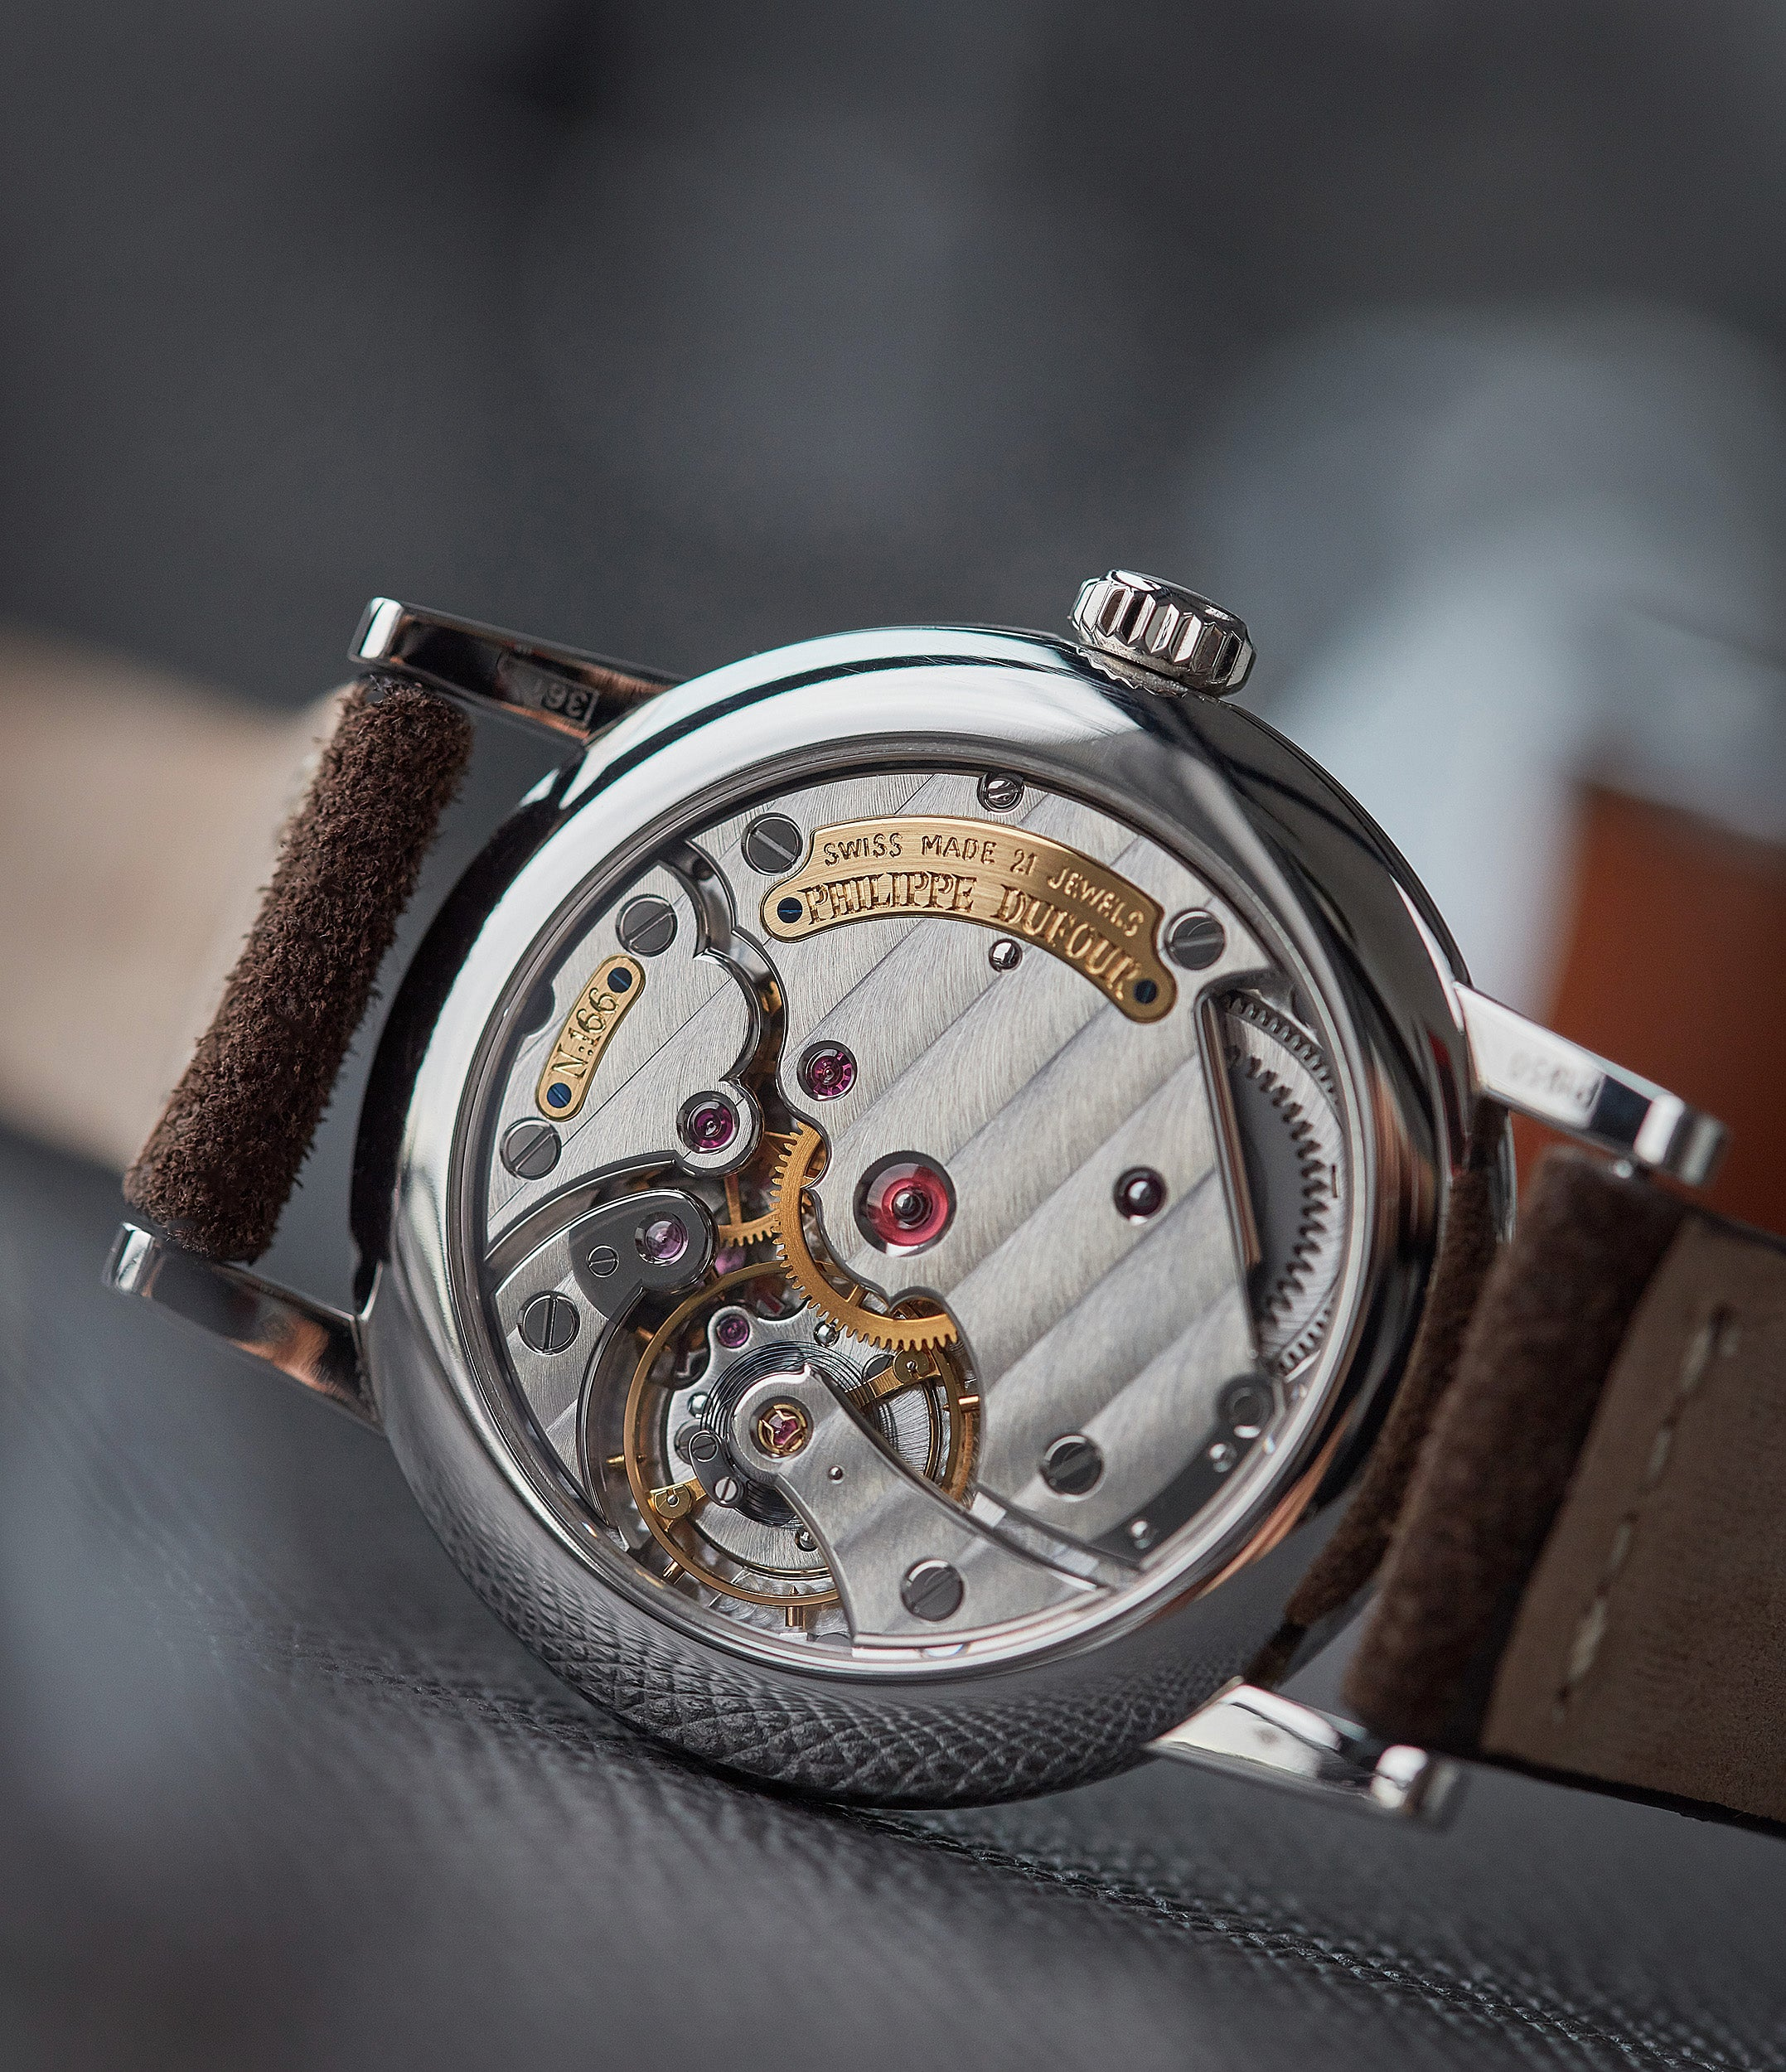 independent watchmaker Philippe Dufour's hand-made Simplicity platinum 37mm time-only rare dress watch  for sale at A Collected Man London UK specialist of rare watches